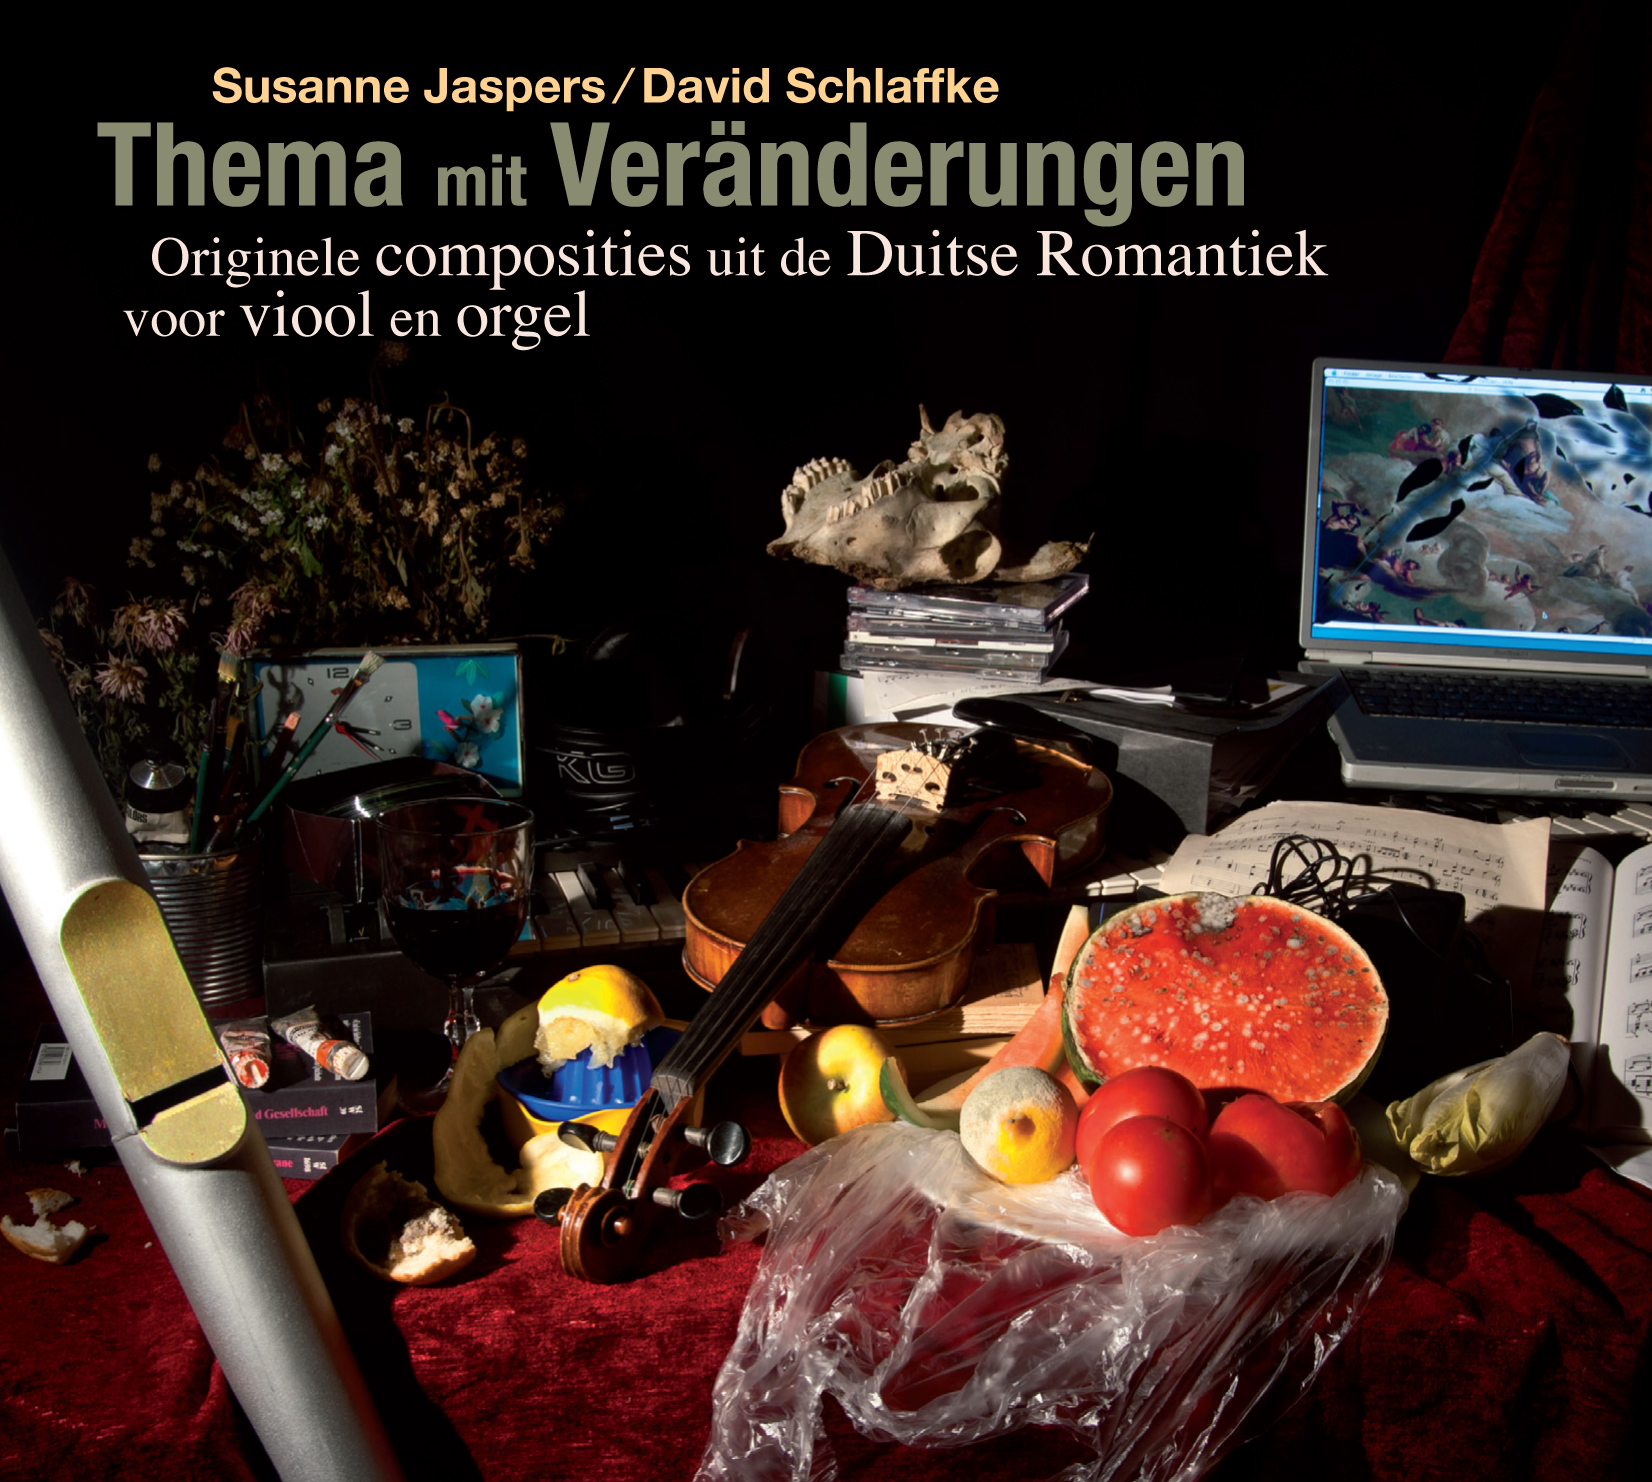 coverlayout_2908-1-Vorderse